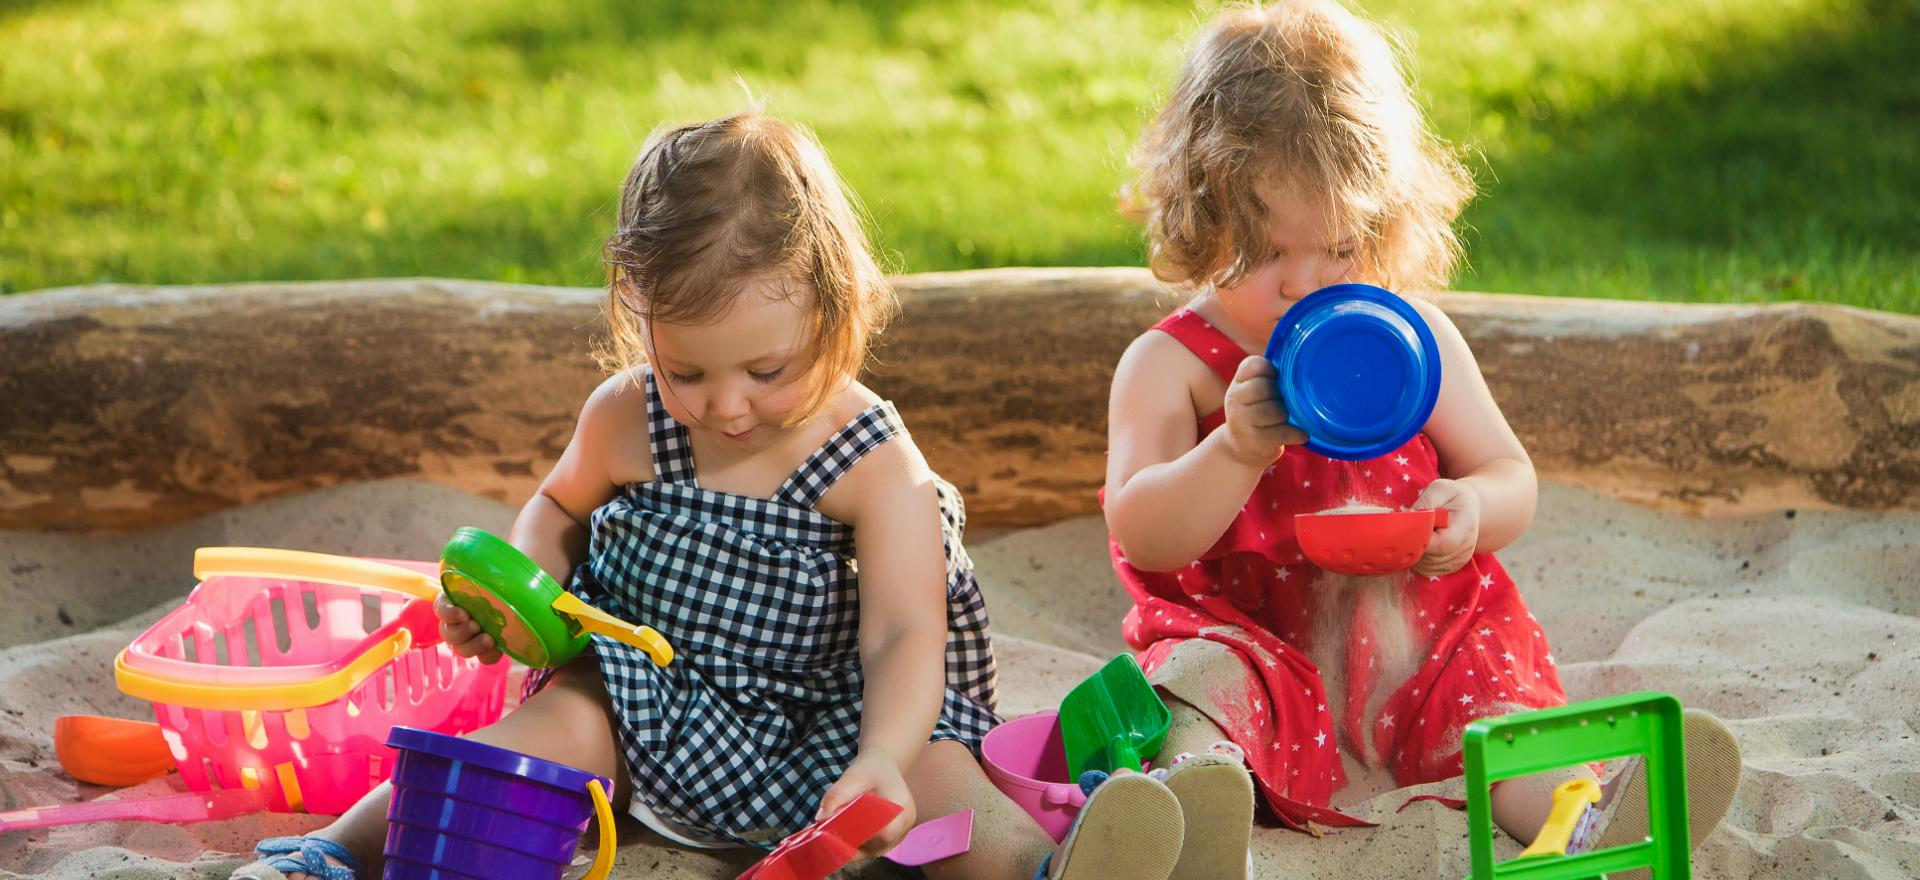 image of girls playing with plastic toys in sandbox